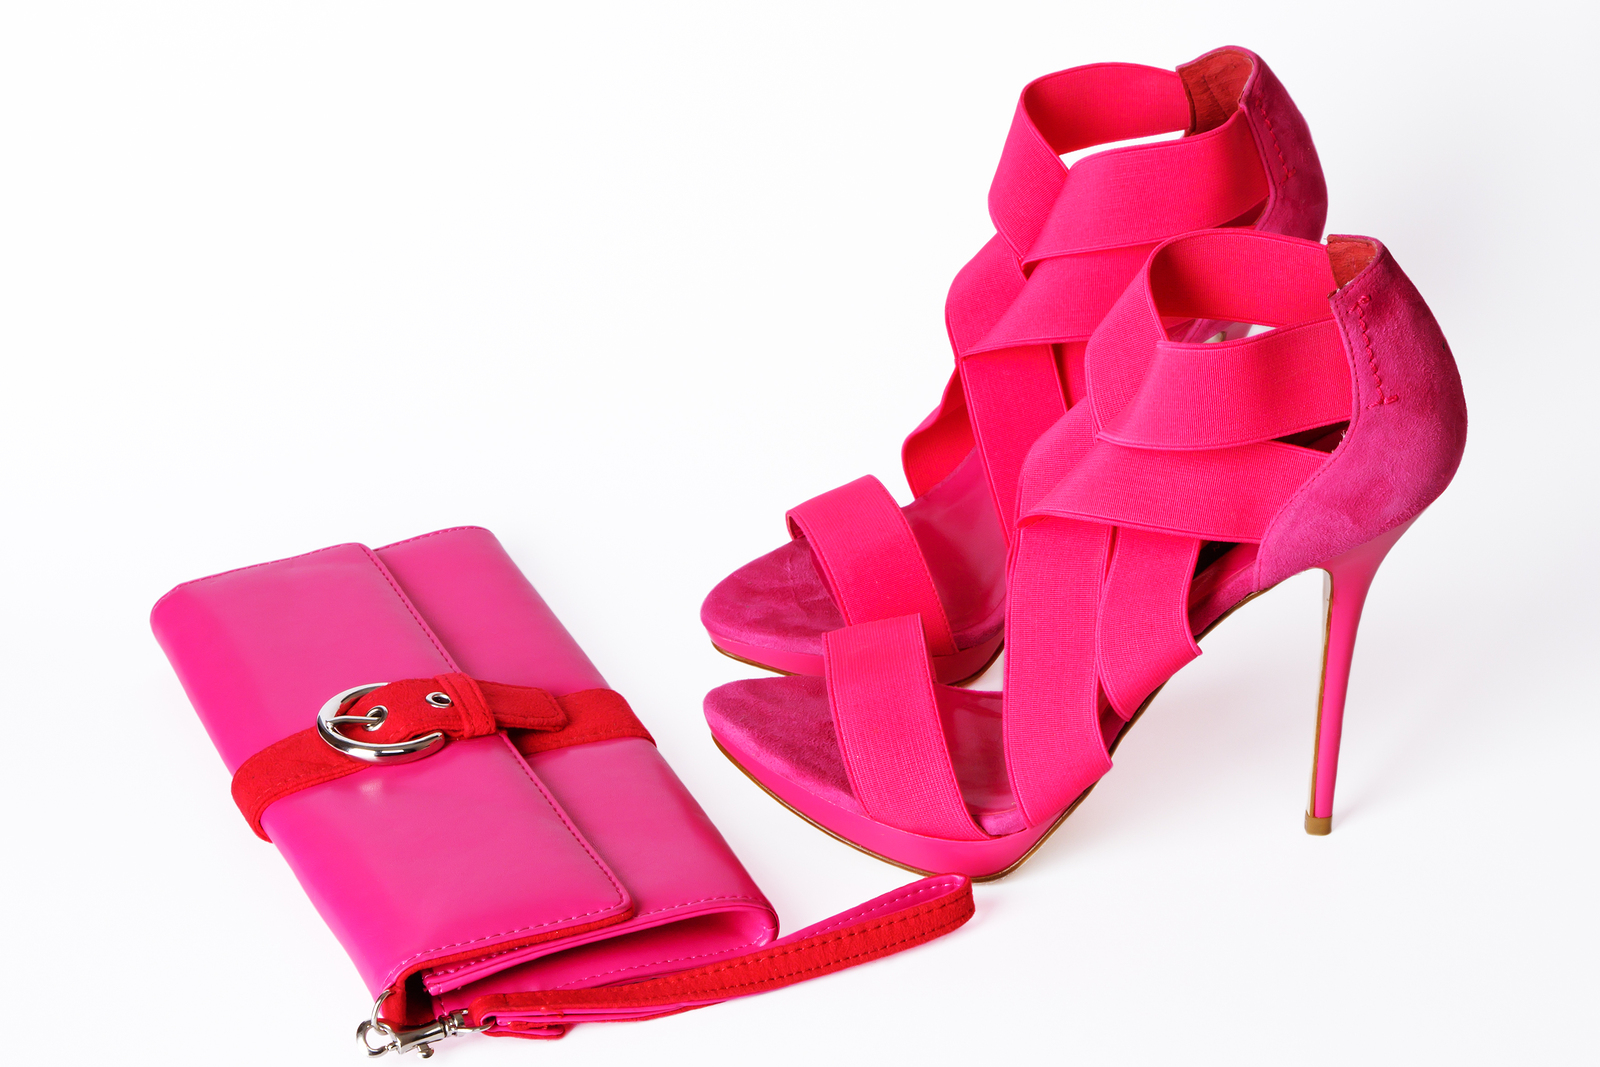 bigstock-Fashionable-Pink-Shoes-12987917.jpg